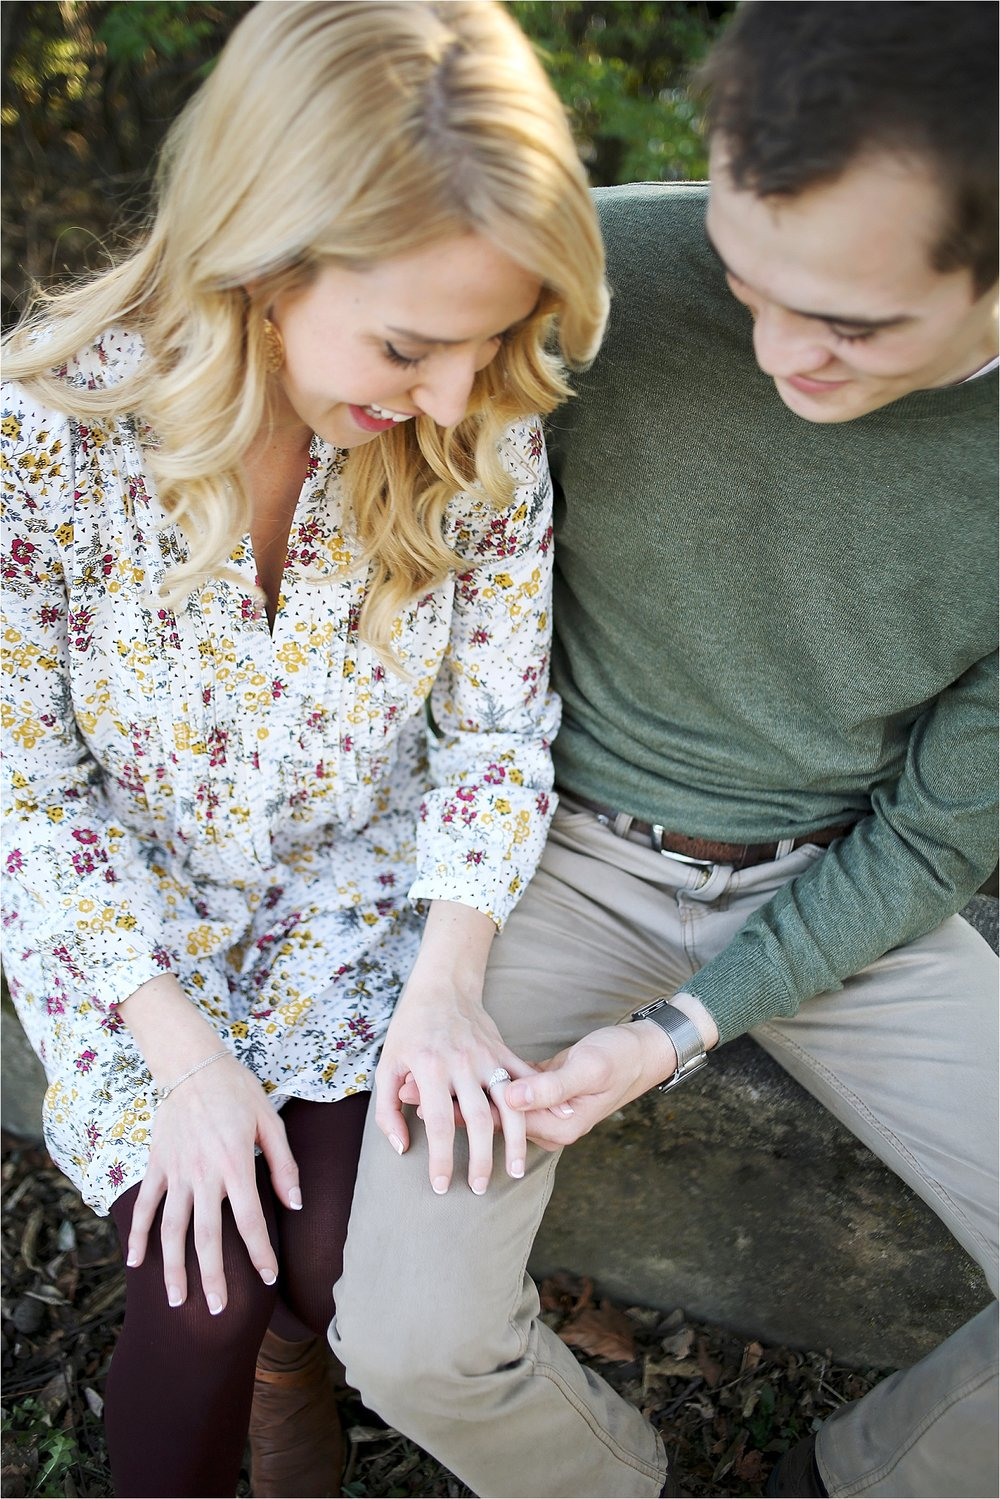 Blacksburg-Proposal-Engagement-Photographer_0022.jpg